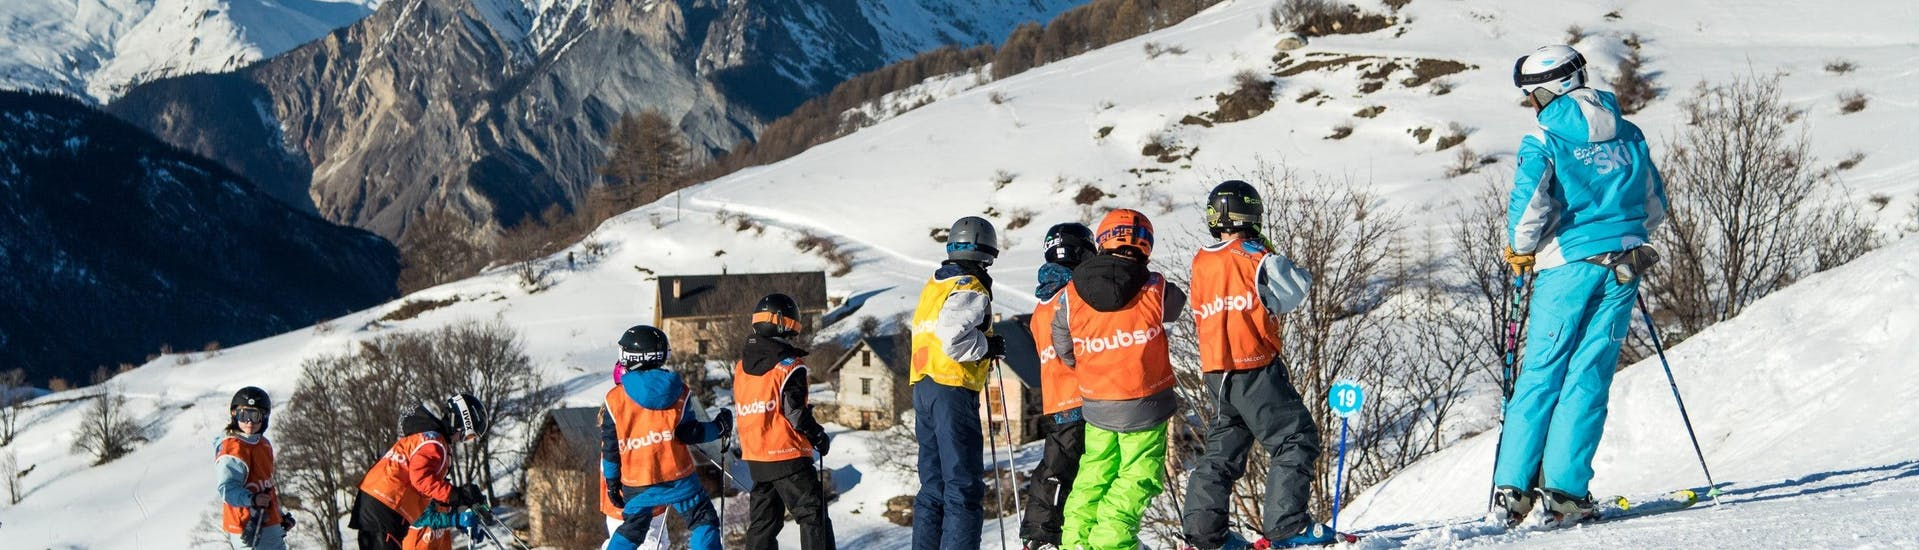 Young skiers are standing in the middle of a beautiful winter landscape during their Kids Ski Lessons (8-15 years) - All Levels with the ski school ESI Dévoluy.